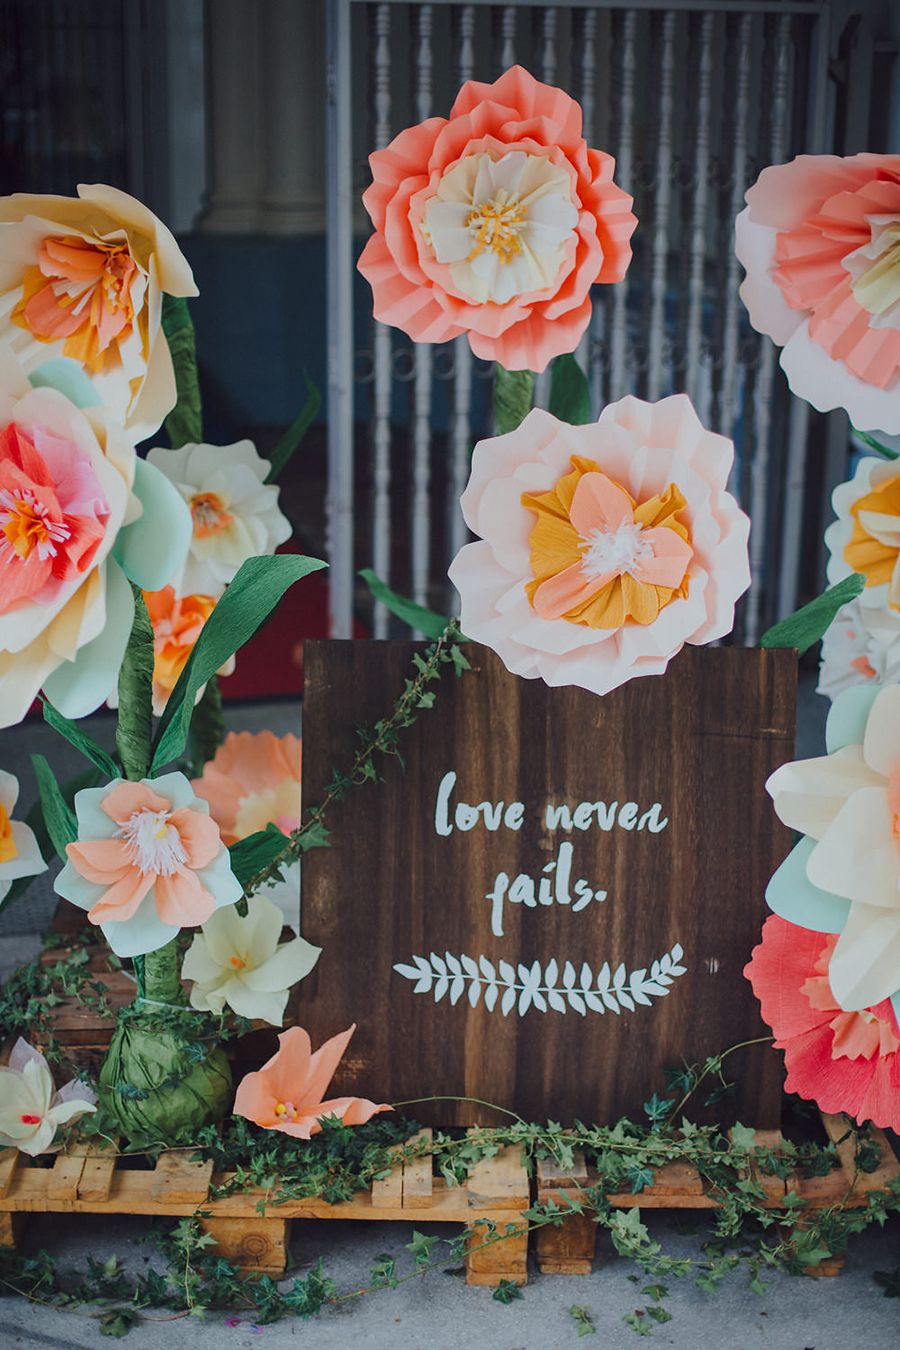 Adrian giacintas wedding with an oversized coral and pink paper a cheerful and chic free standing installation of oversized paper blooms dreamt up by in merry motion in the brides favourite shades of coral and pink mightylinksfo